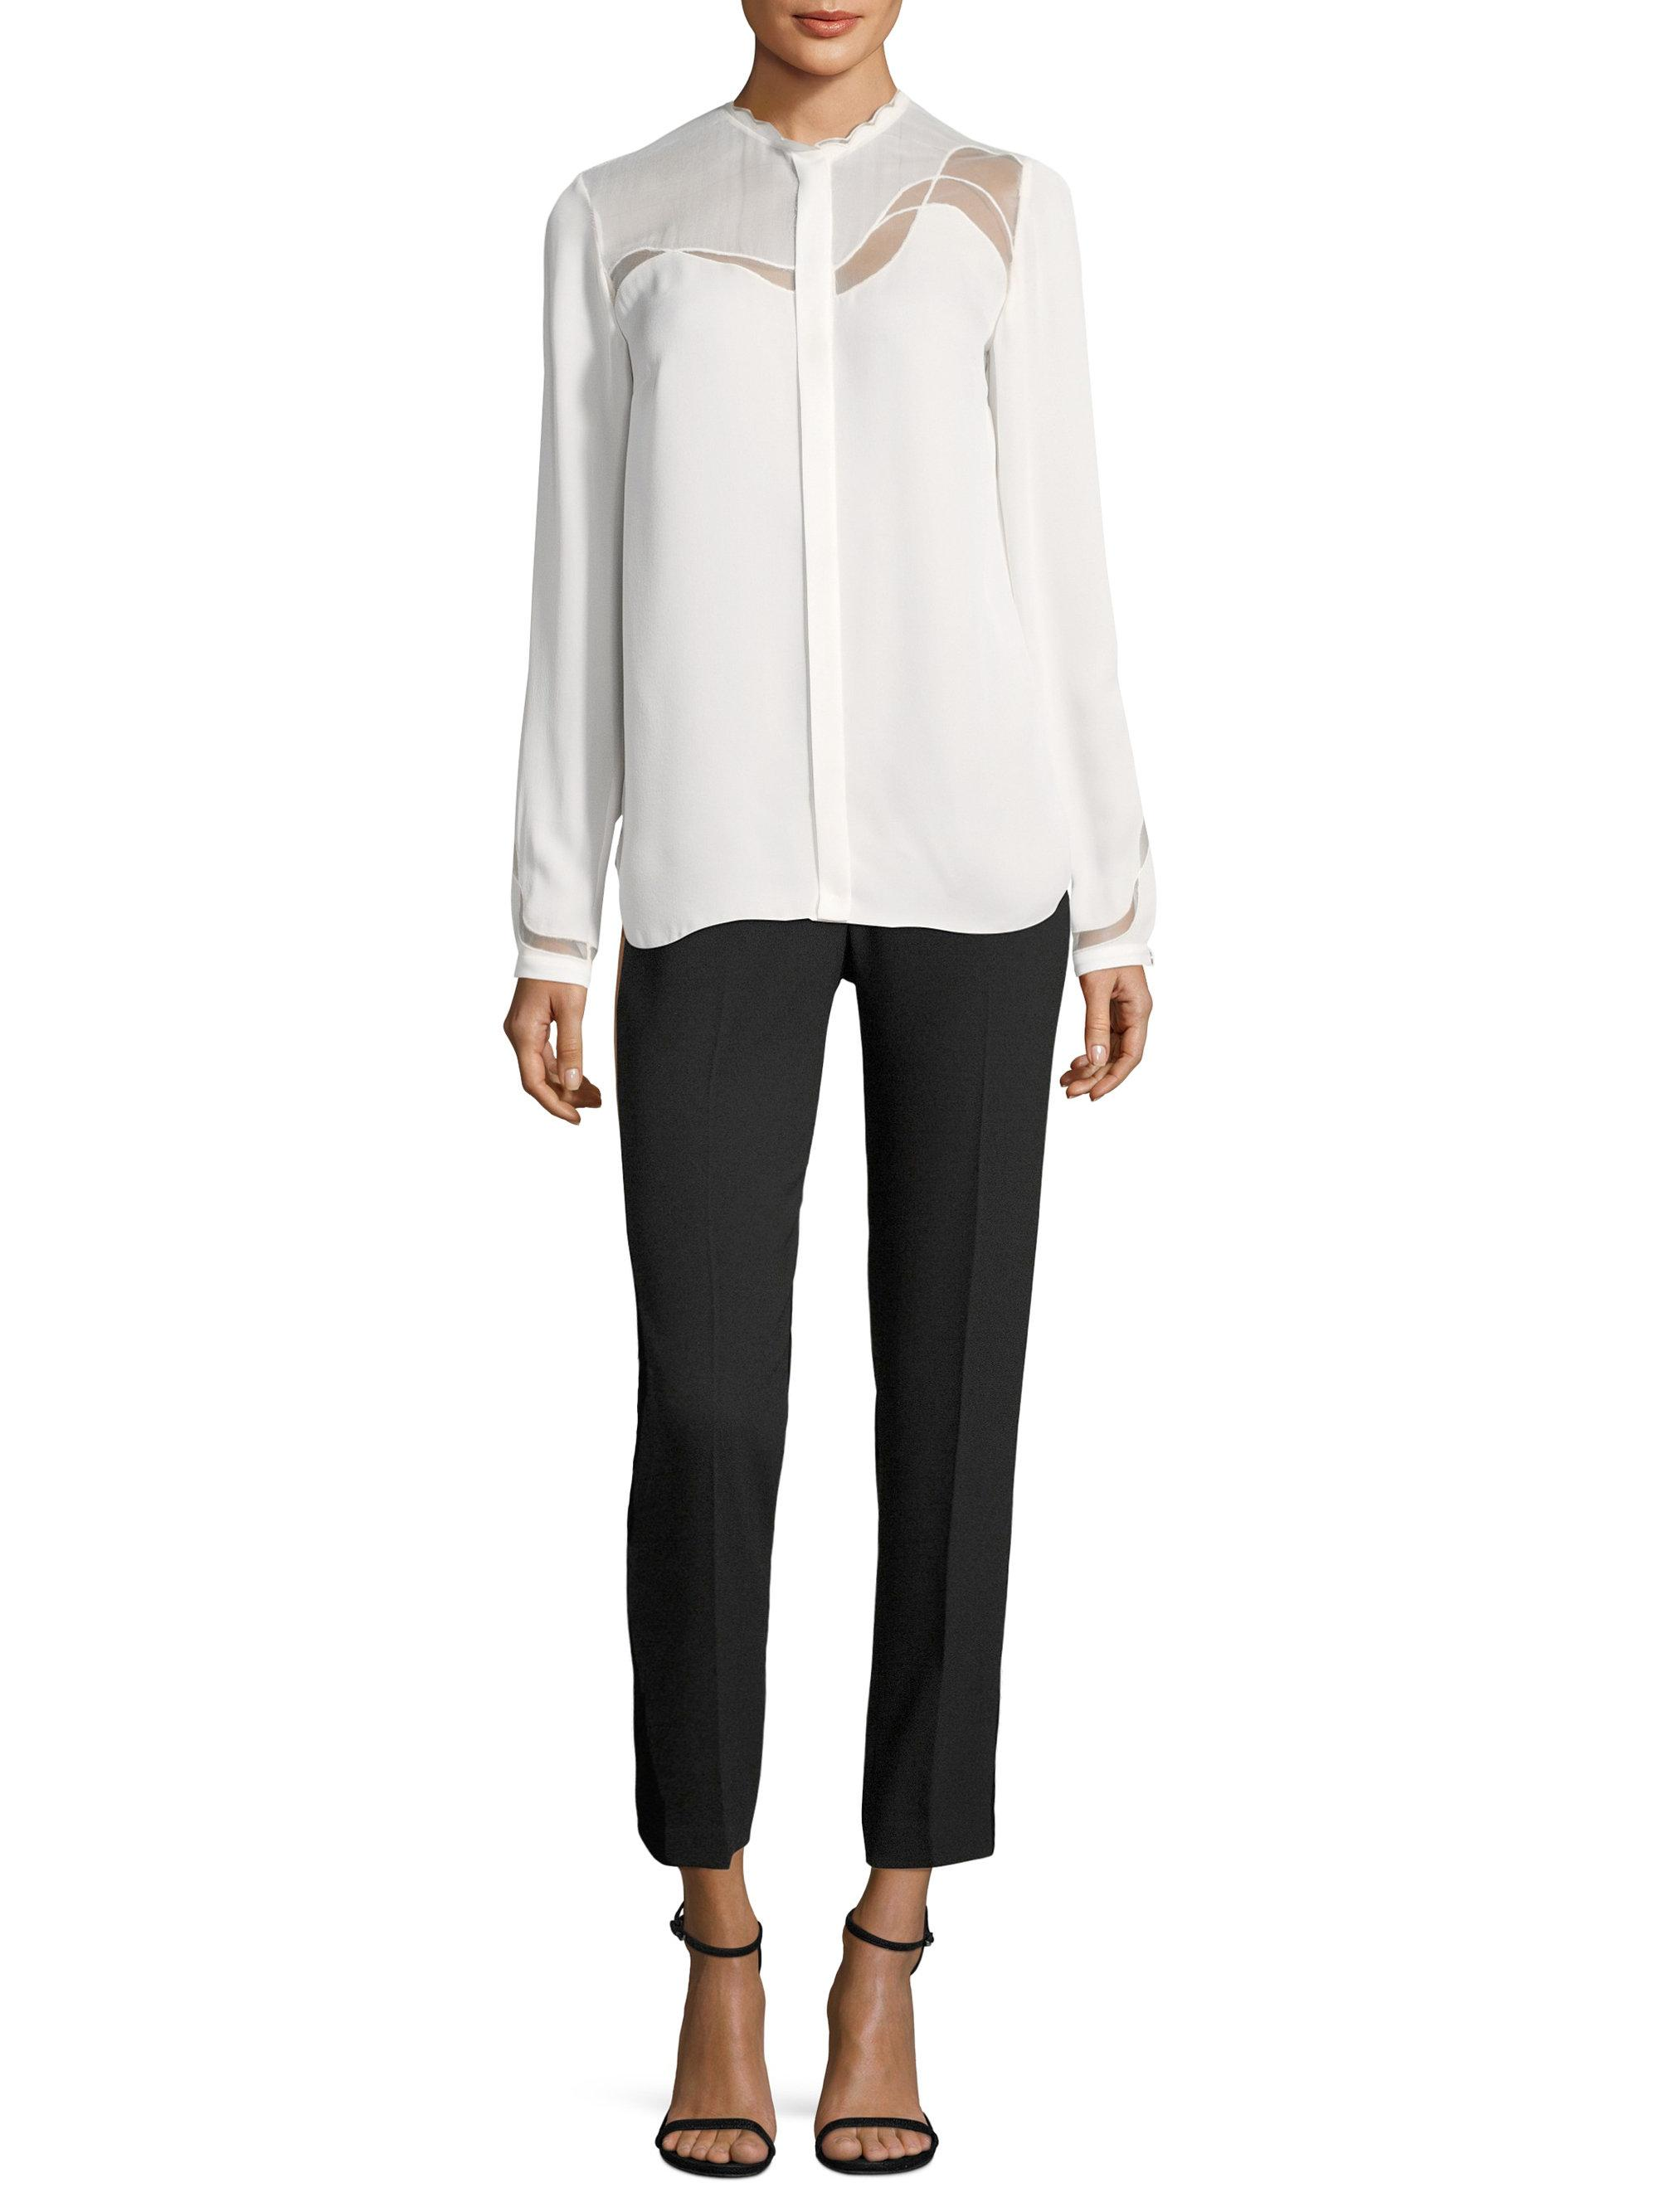 a3fd50ac07f049 Lyst - Elie Tahari Justina Blouse in White